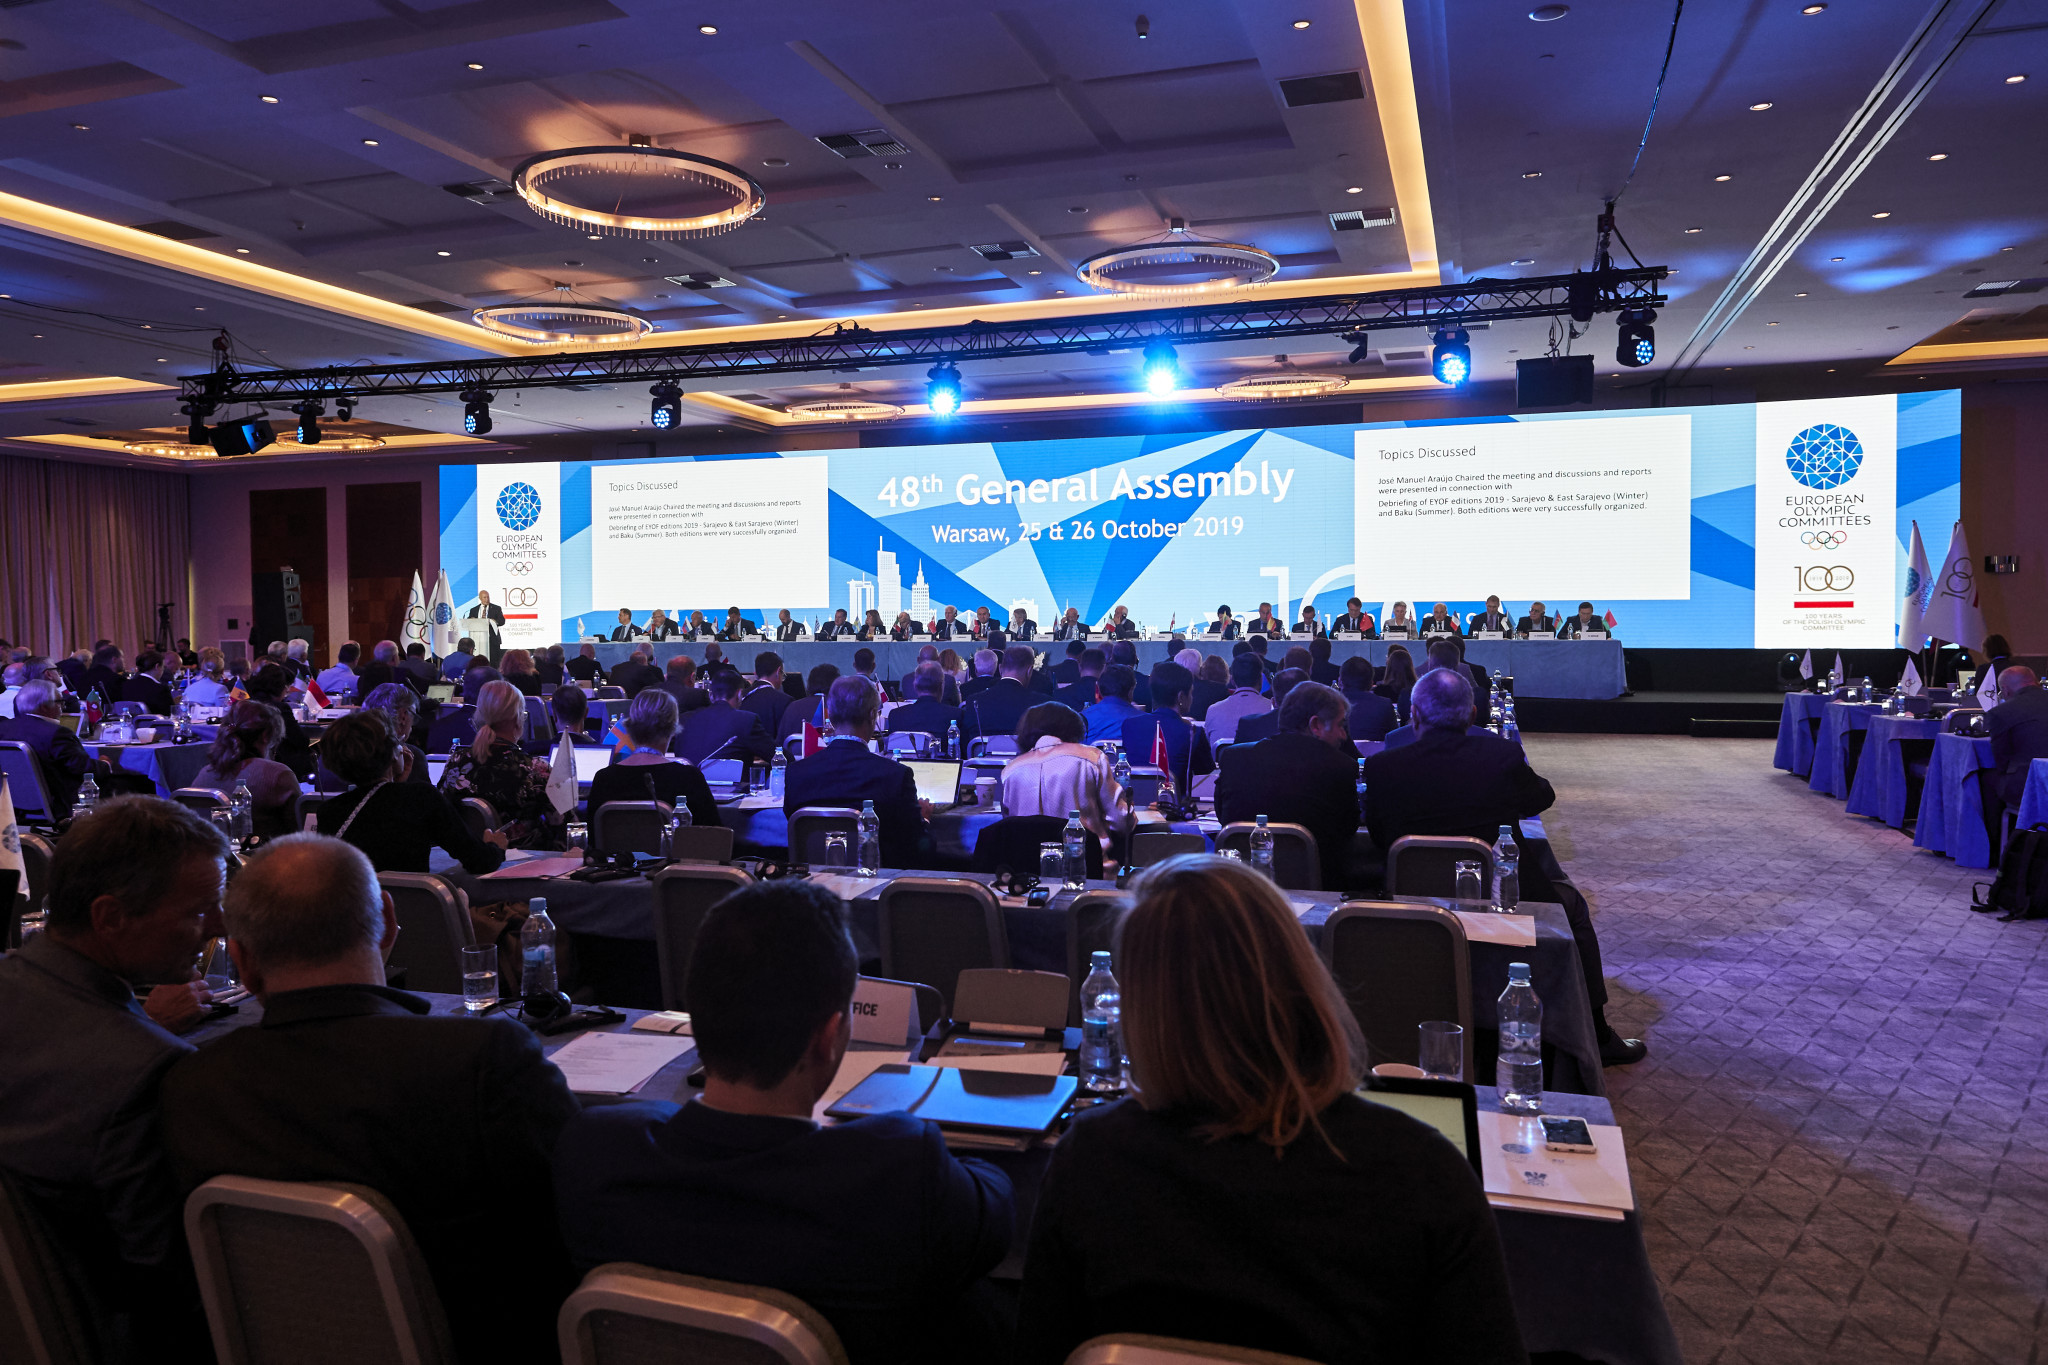 The two-day General Assembly came to close with Istanbul announced as the location for 2020 ©EOC